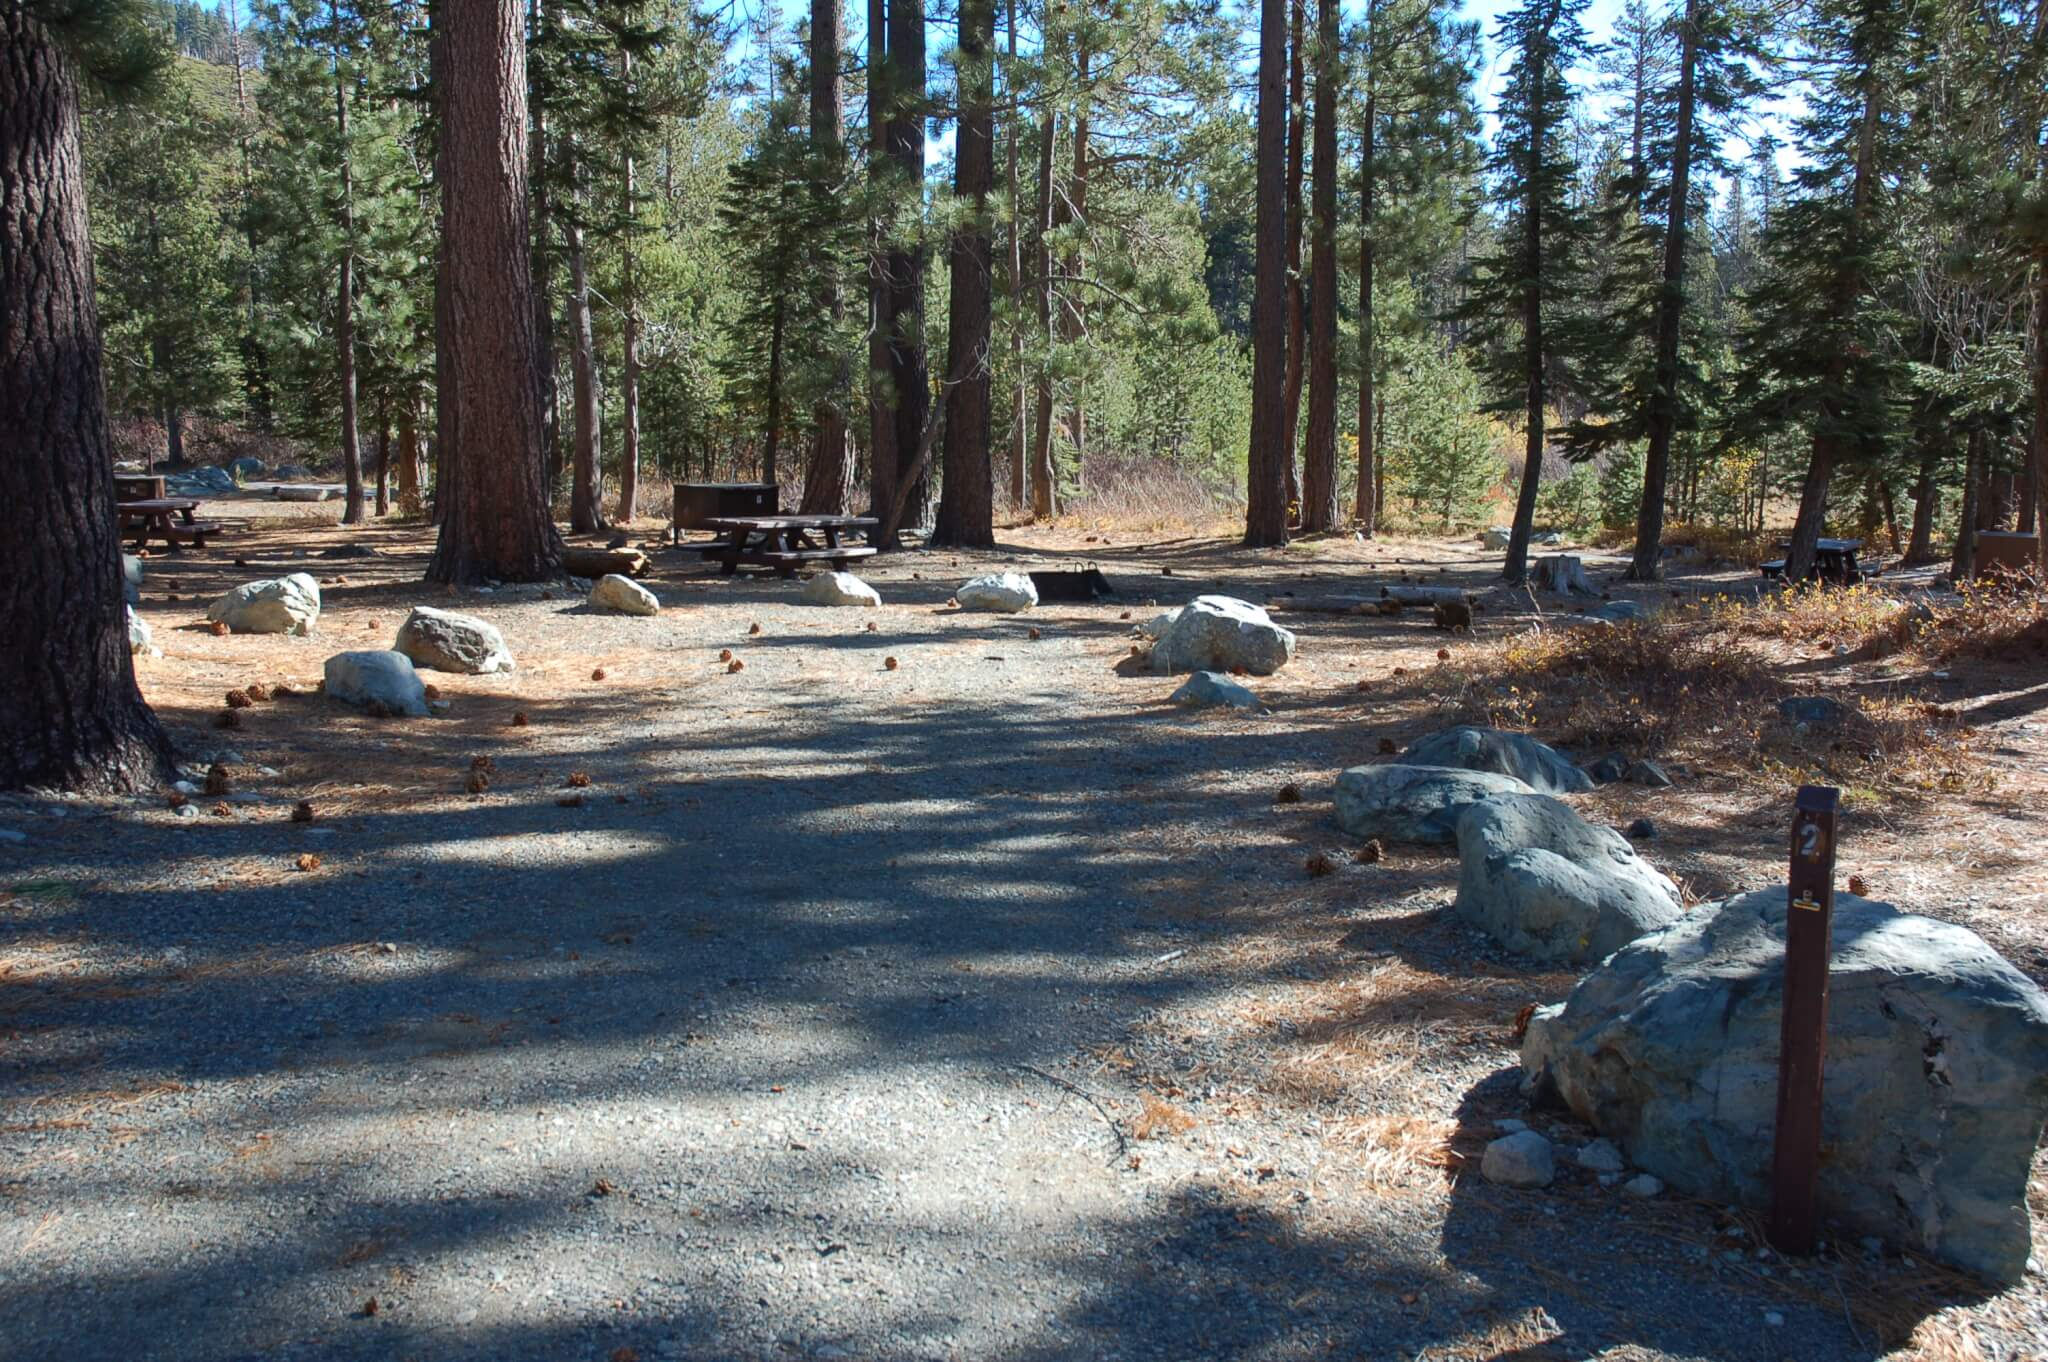 Sardine Lake Campground - Site 2 - CampsitePhotos.com